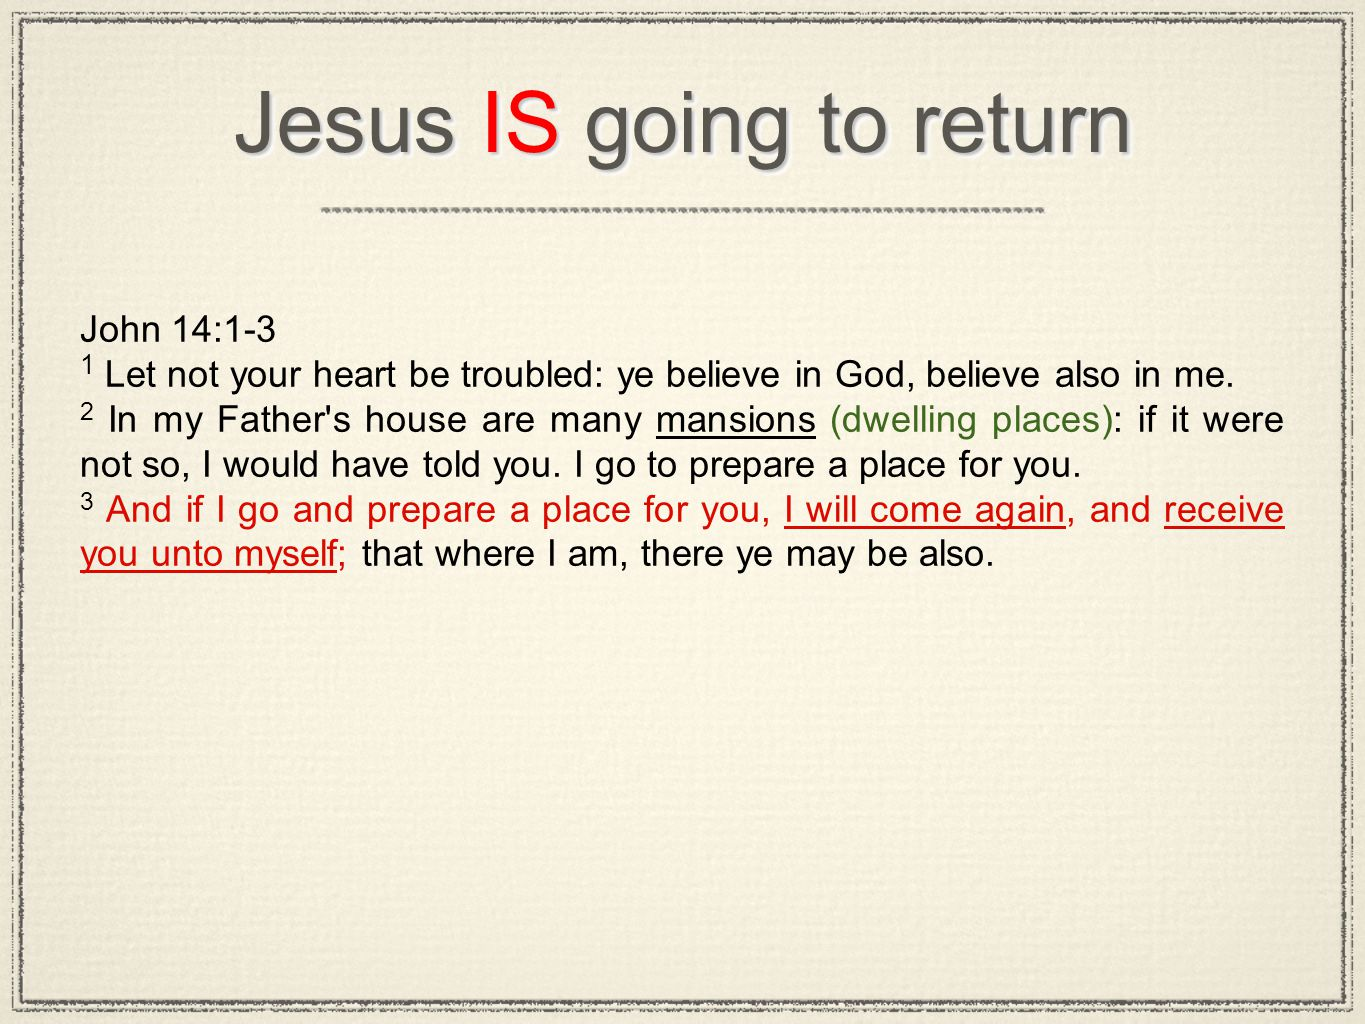 Jesus IS going to return John 14:1-3 1 Let not your heart be troubled: ye believe in God, believe also in me. 2 In my Father's house are many mansions